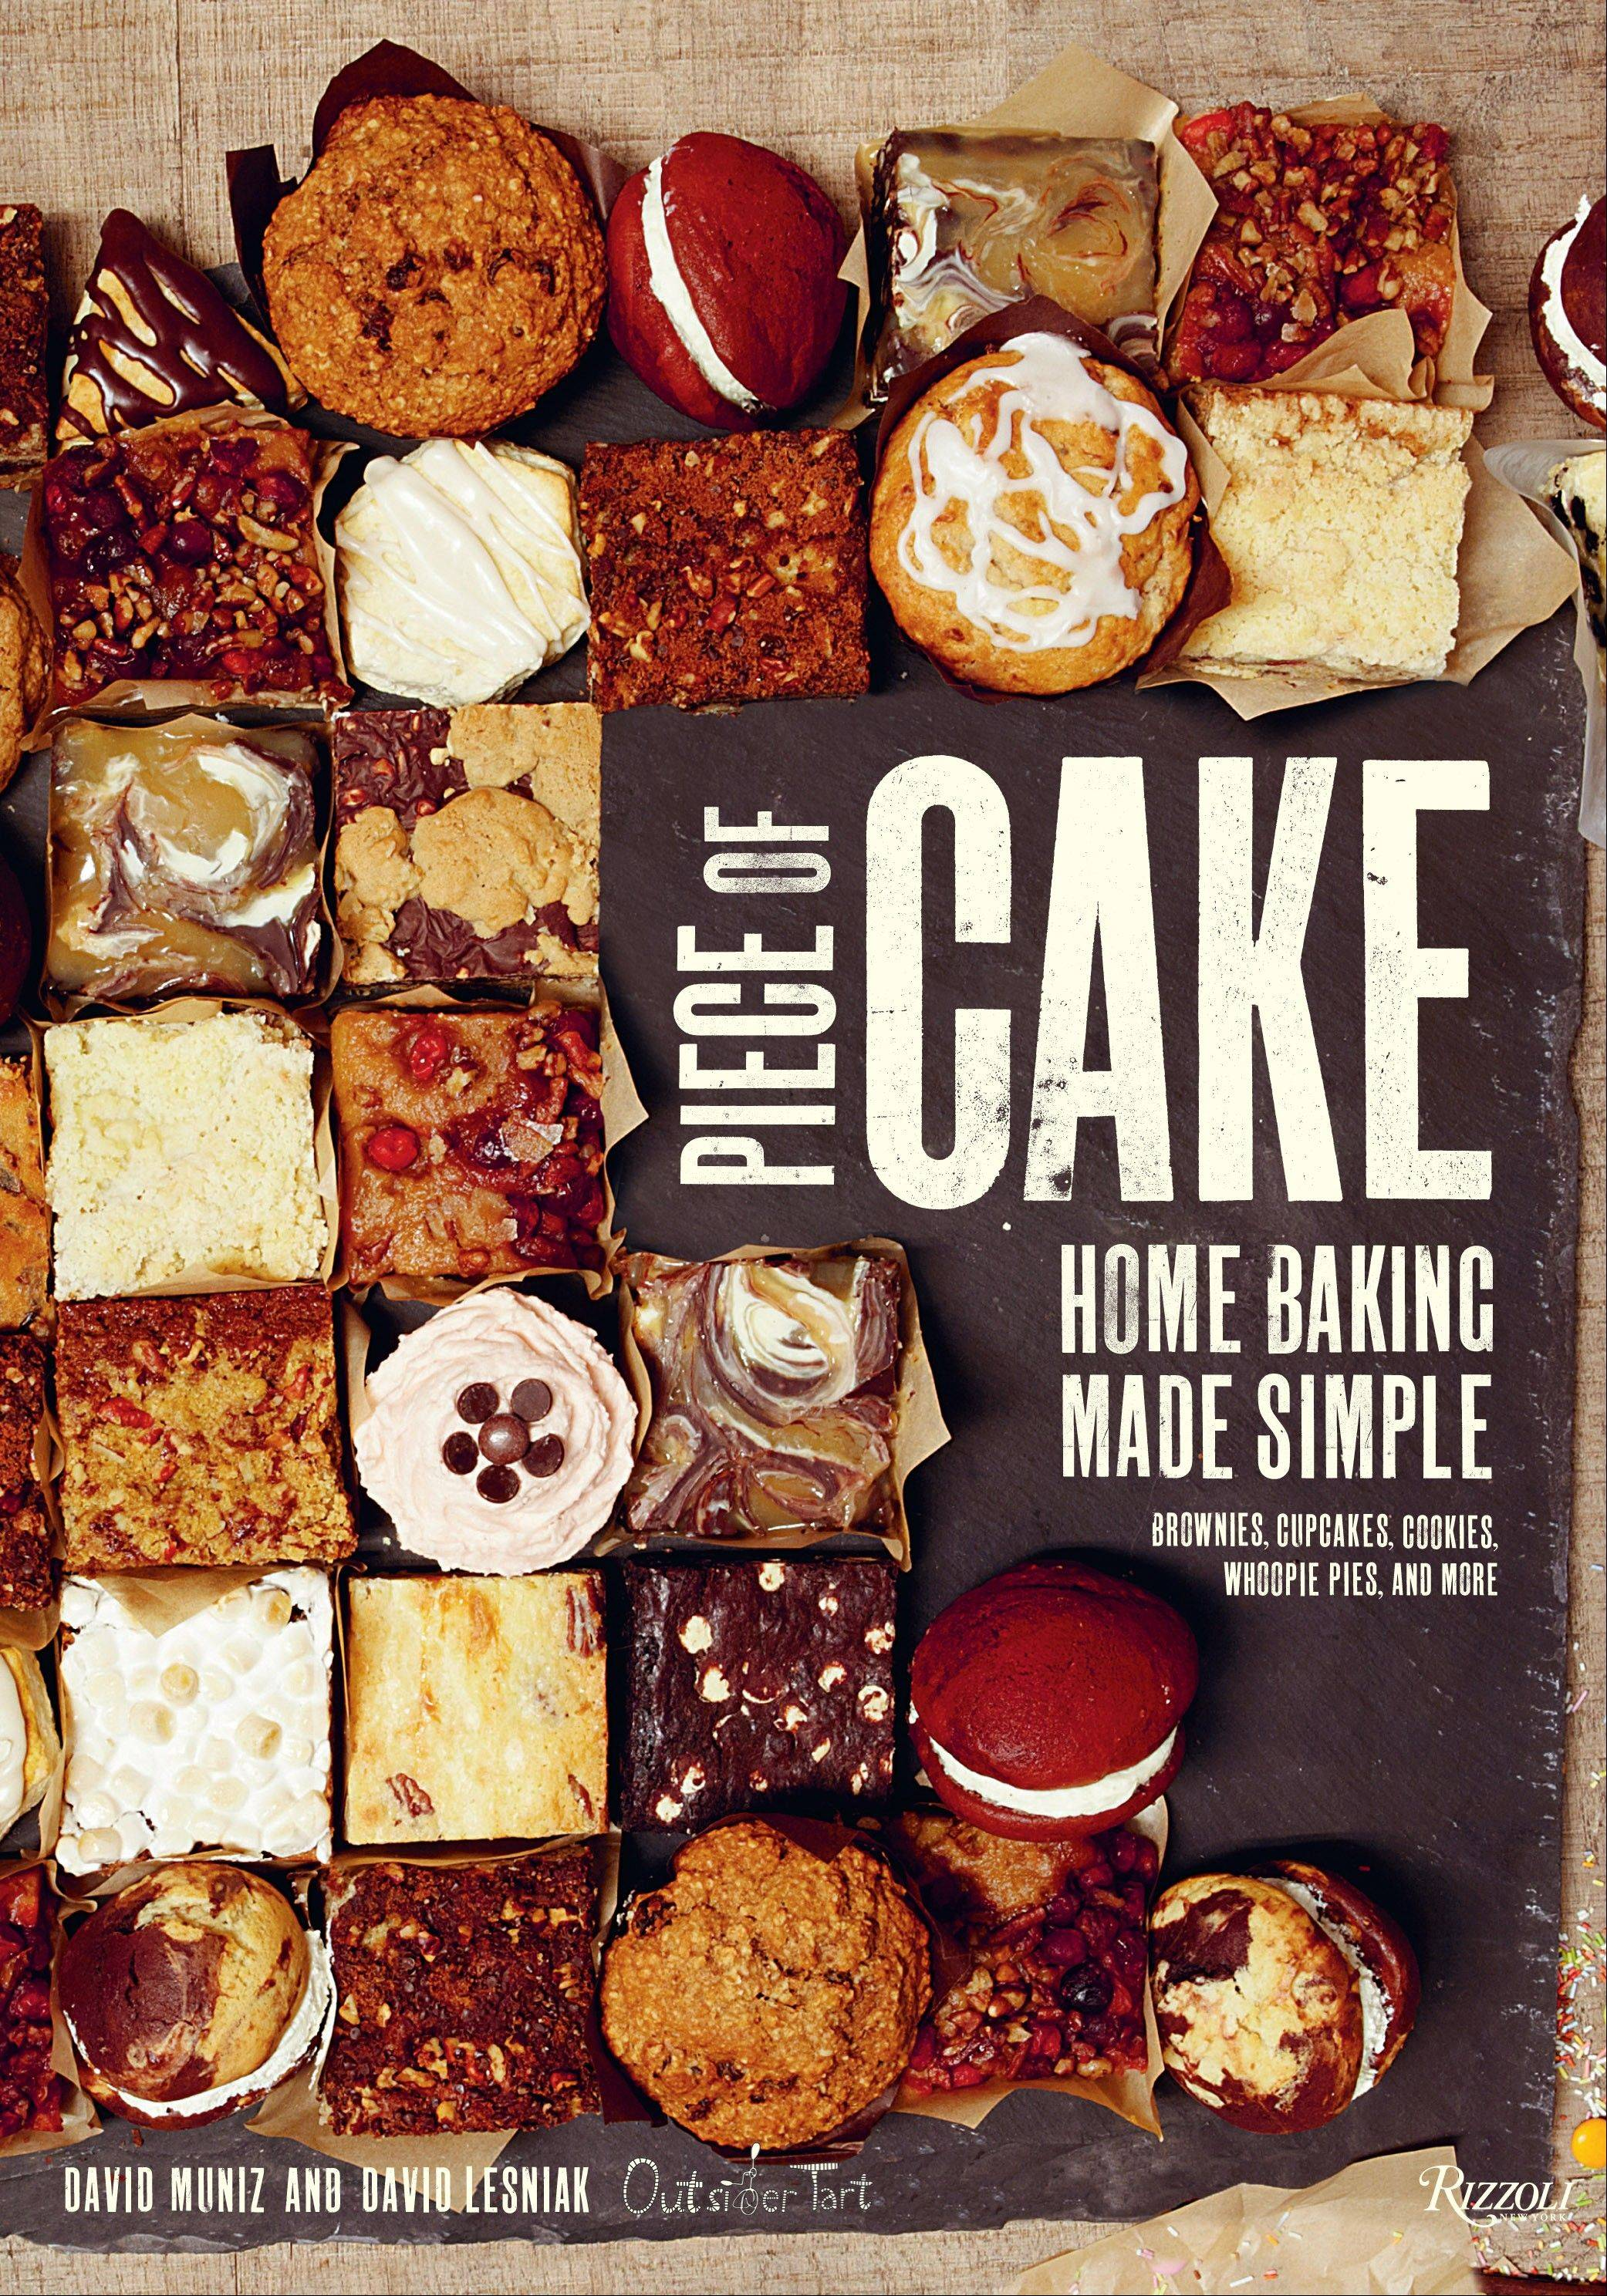 """Piece of Cake: Home Baking Made Simple"" by David Muniz and David Lesniak"